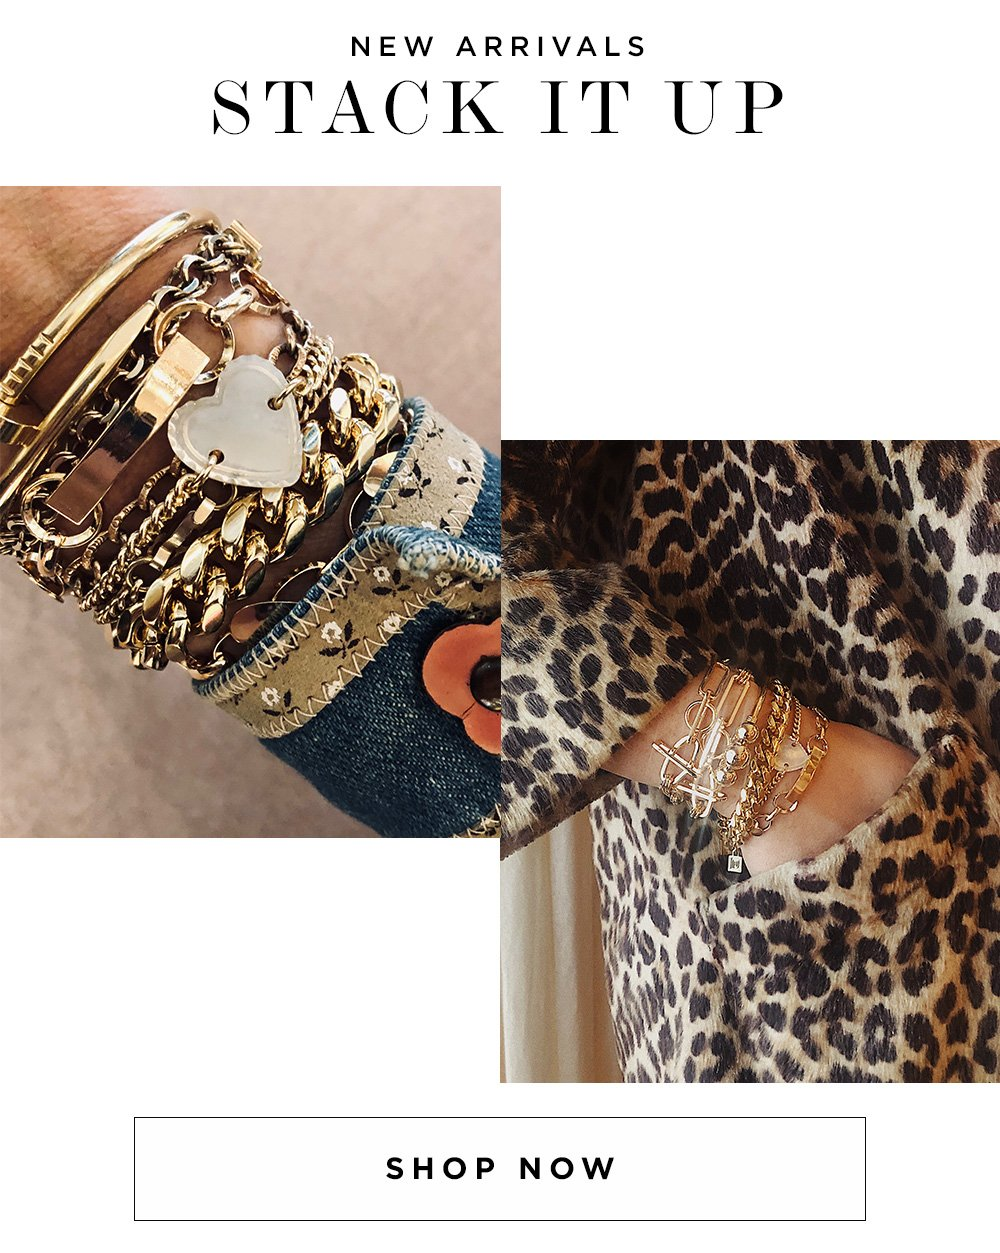 NEW ARRIVALS - STACK IT UP - SHOP NOW